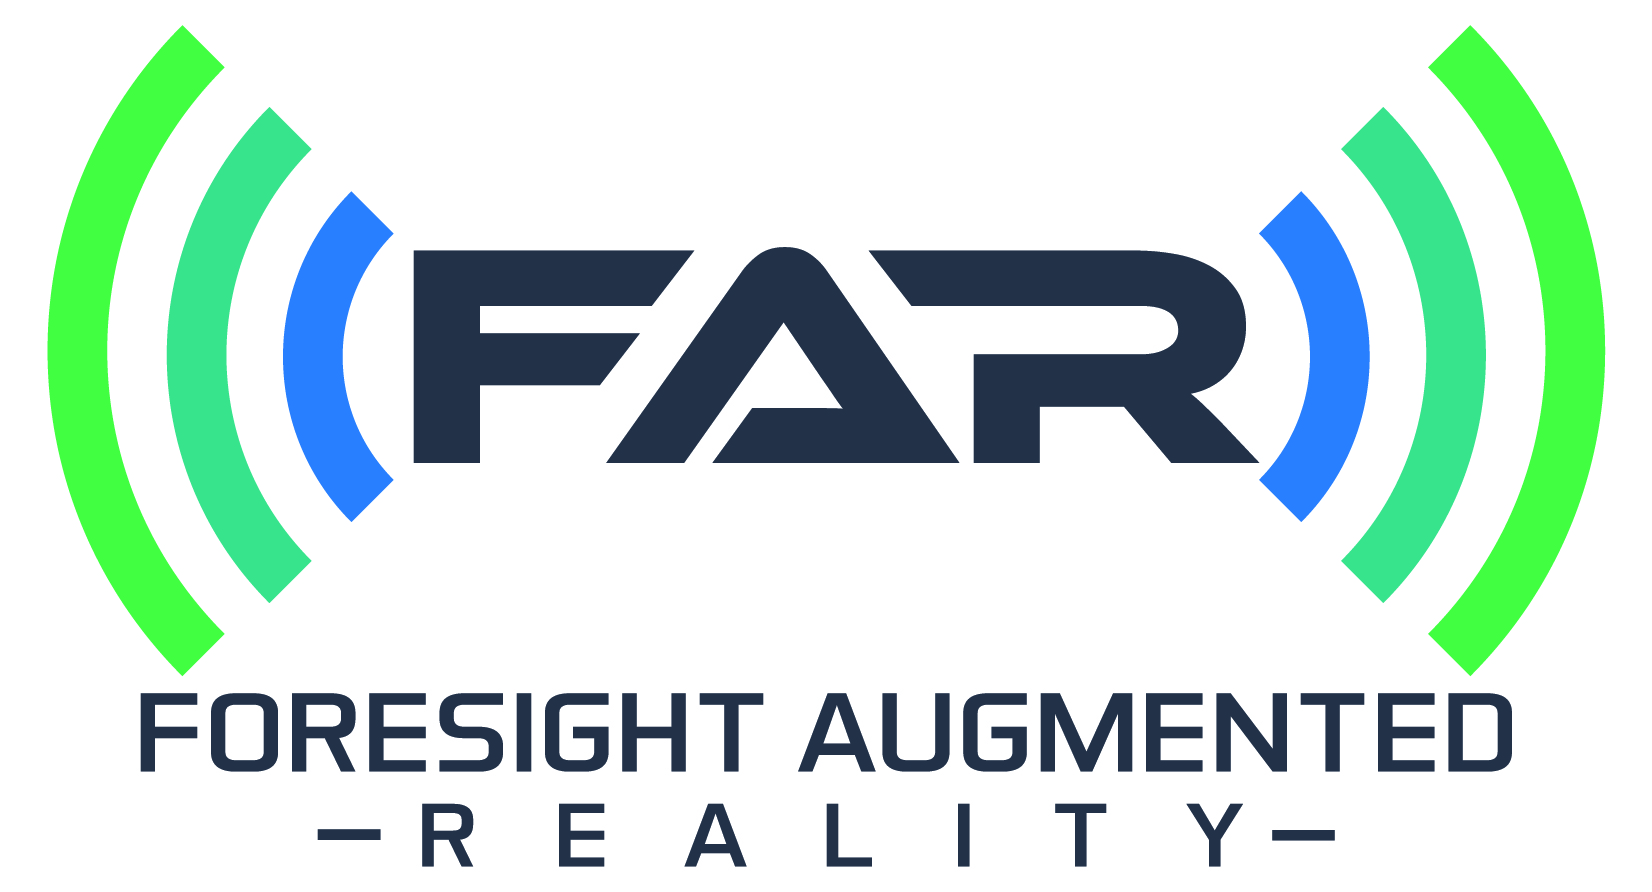 Foresight Augmented Reality